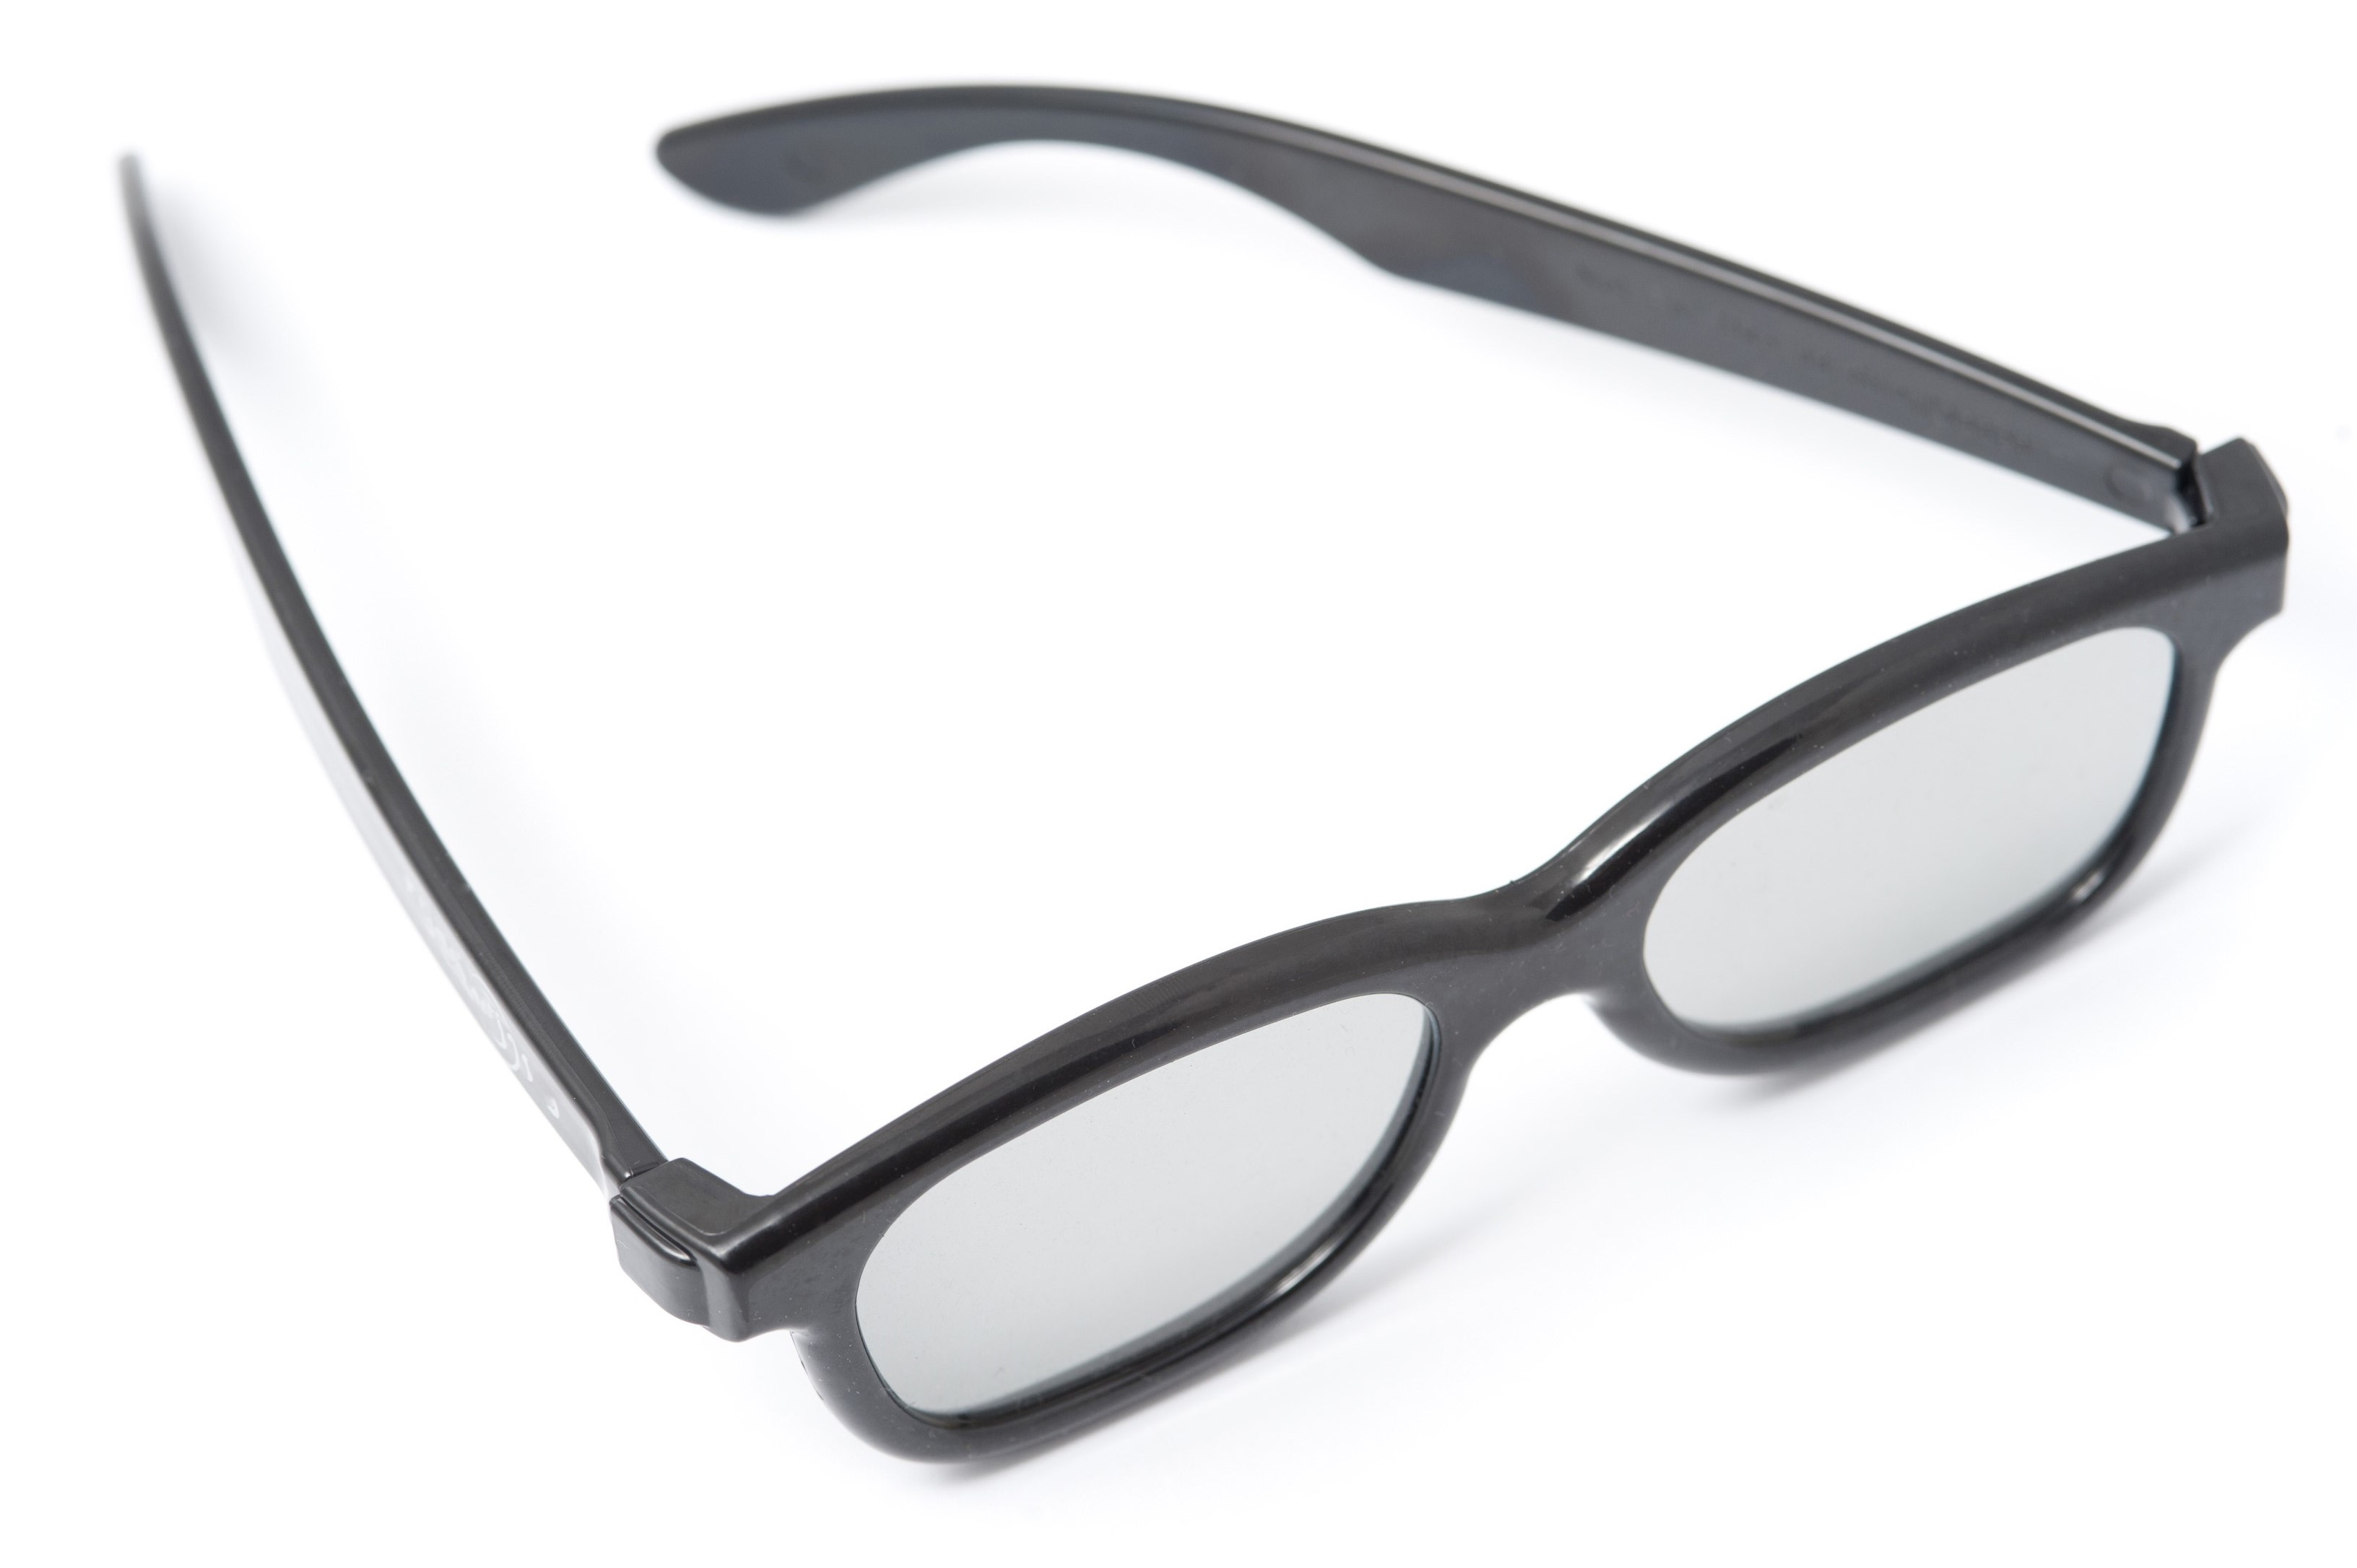 Retro glasses or spectacles with heavy black plastic frames on a white background, high angle view